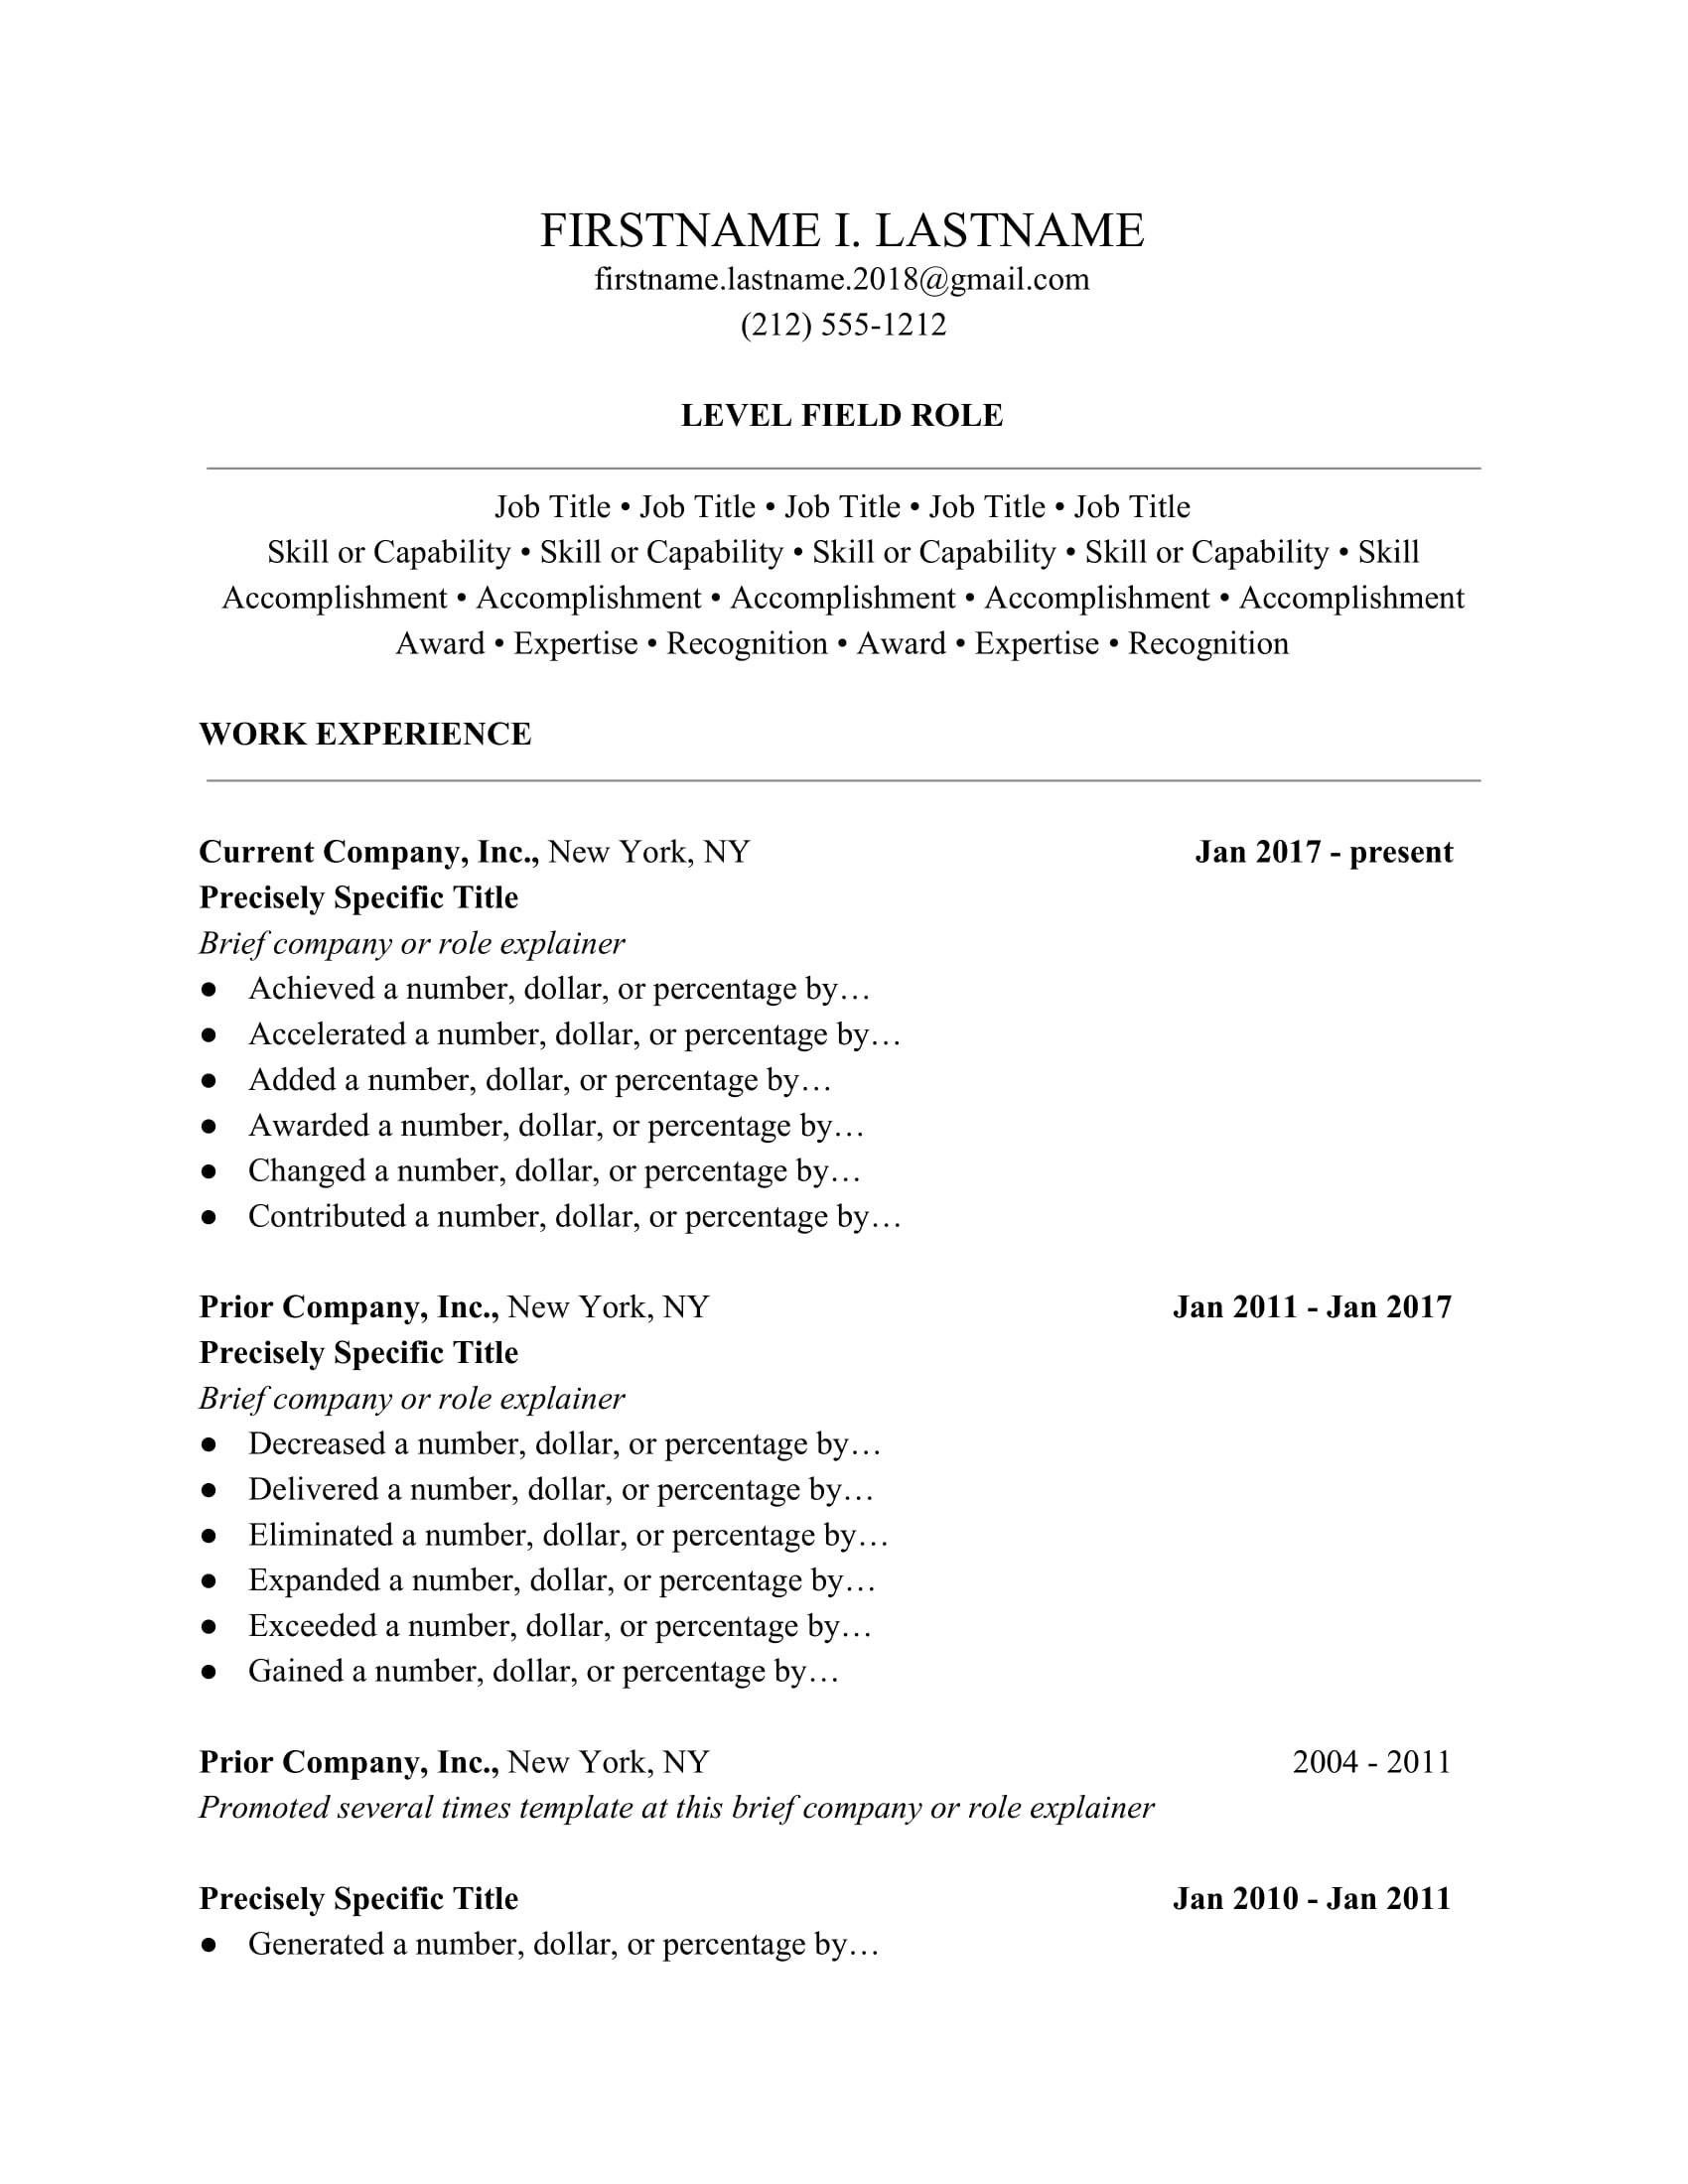 resume form guide